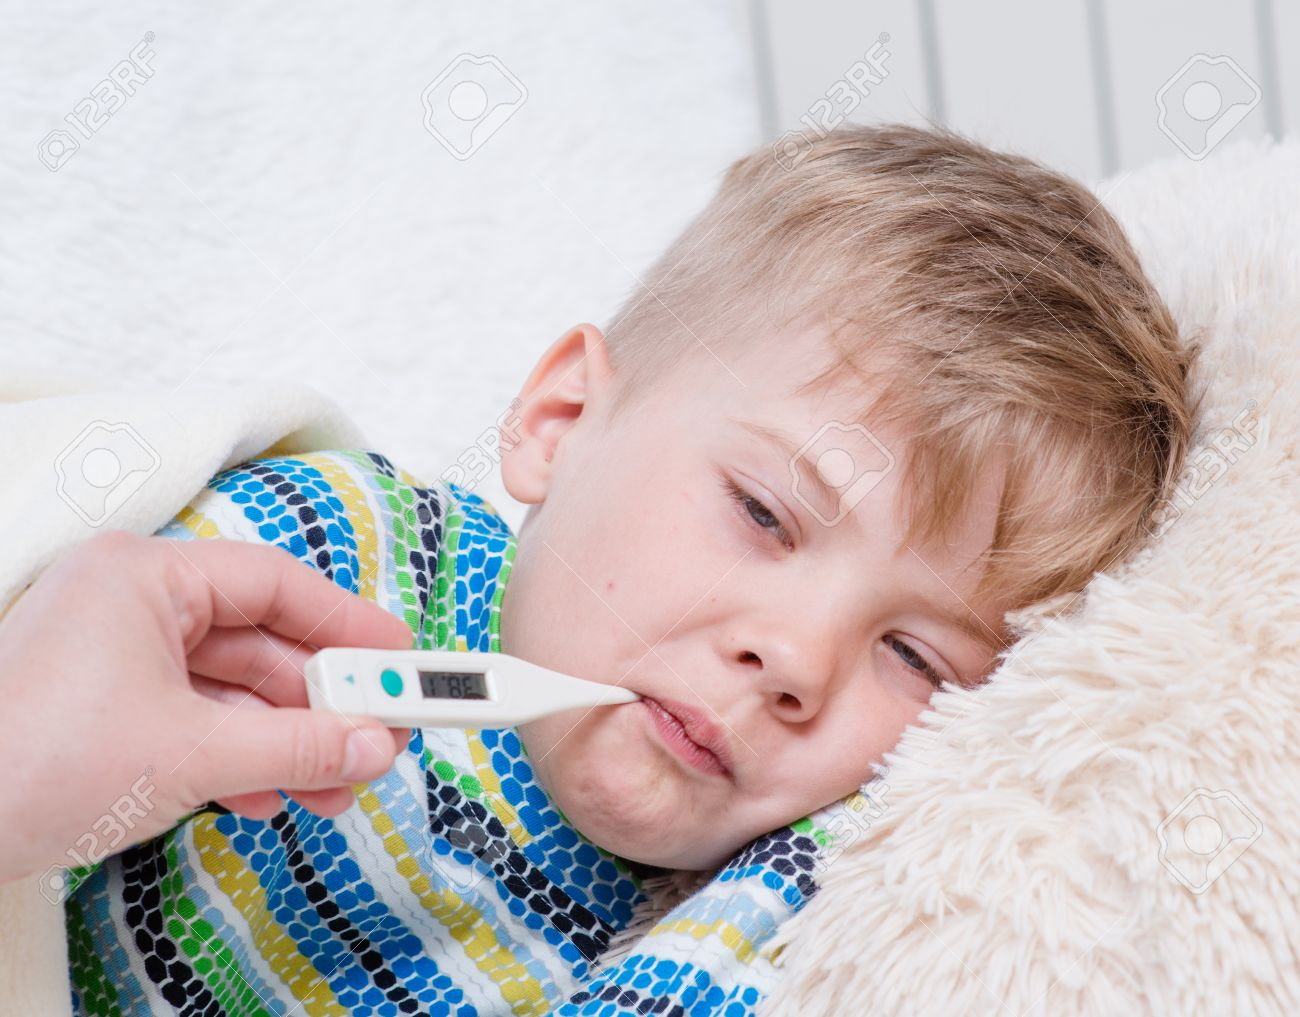 Sick kid with high fever laying in bed and mother taking temperature sick kid with high fever laying in bed and mother taking temperature stock photo altavistaventures Choice Image